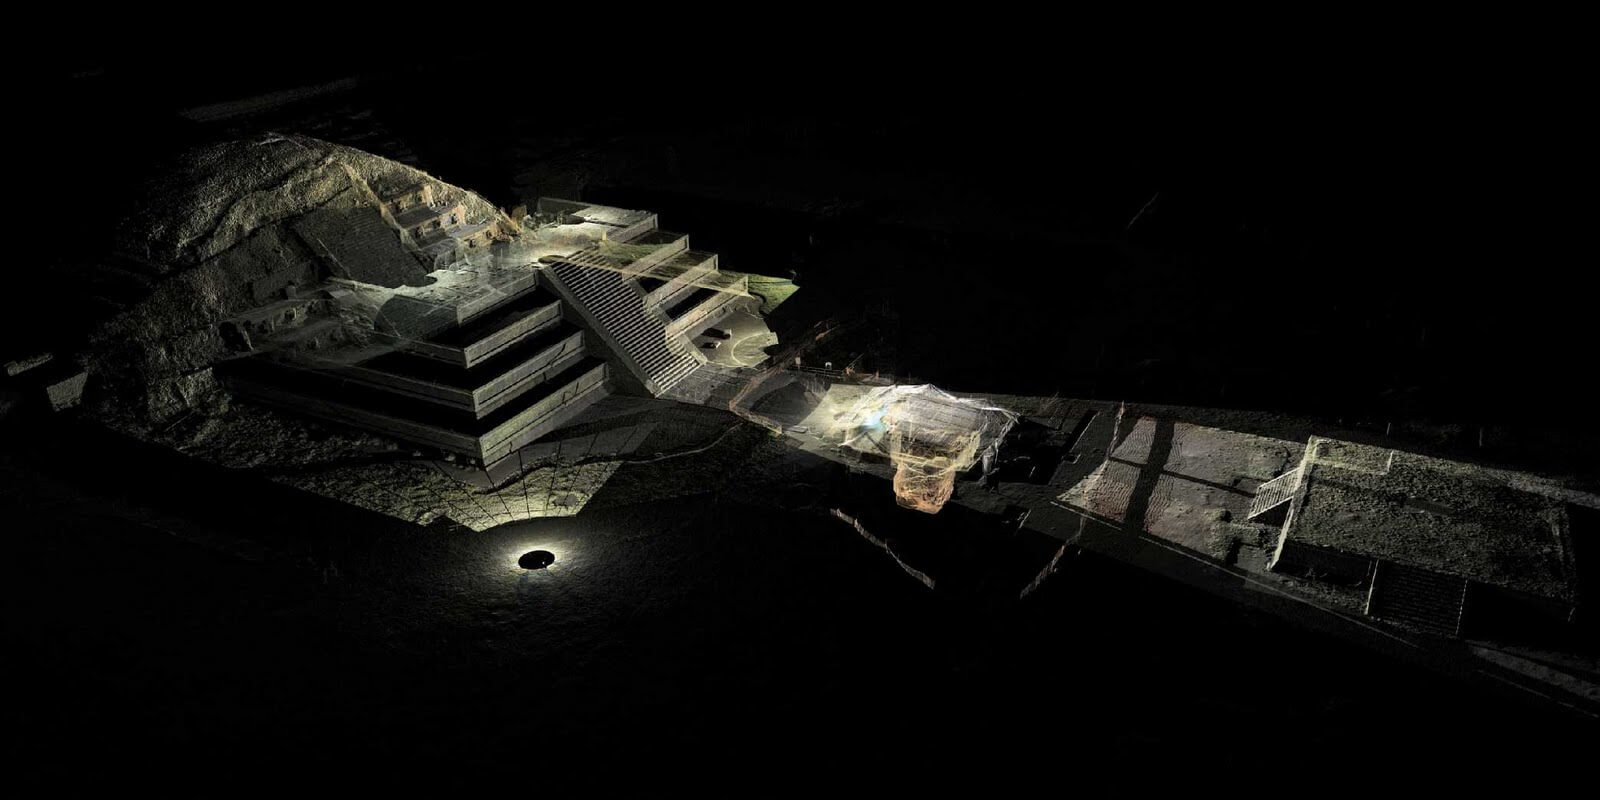 Robot finds 3 rooms under Feathered Serpent temple Temple-of-the-Feathered-Serpent